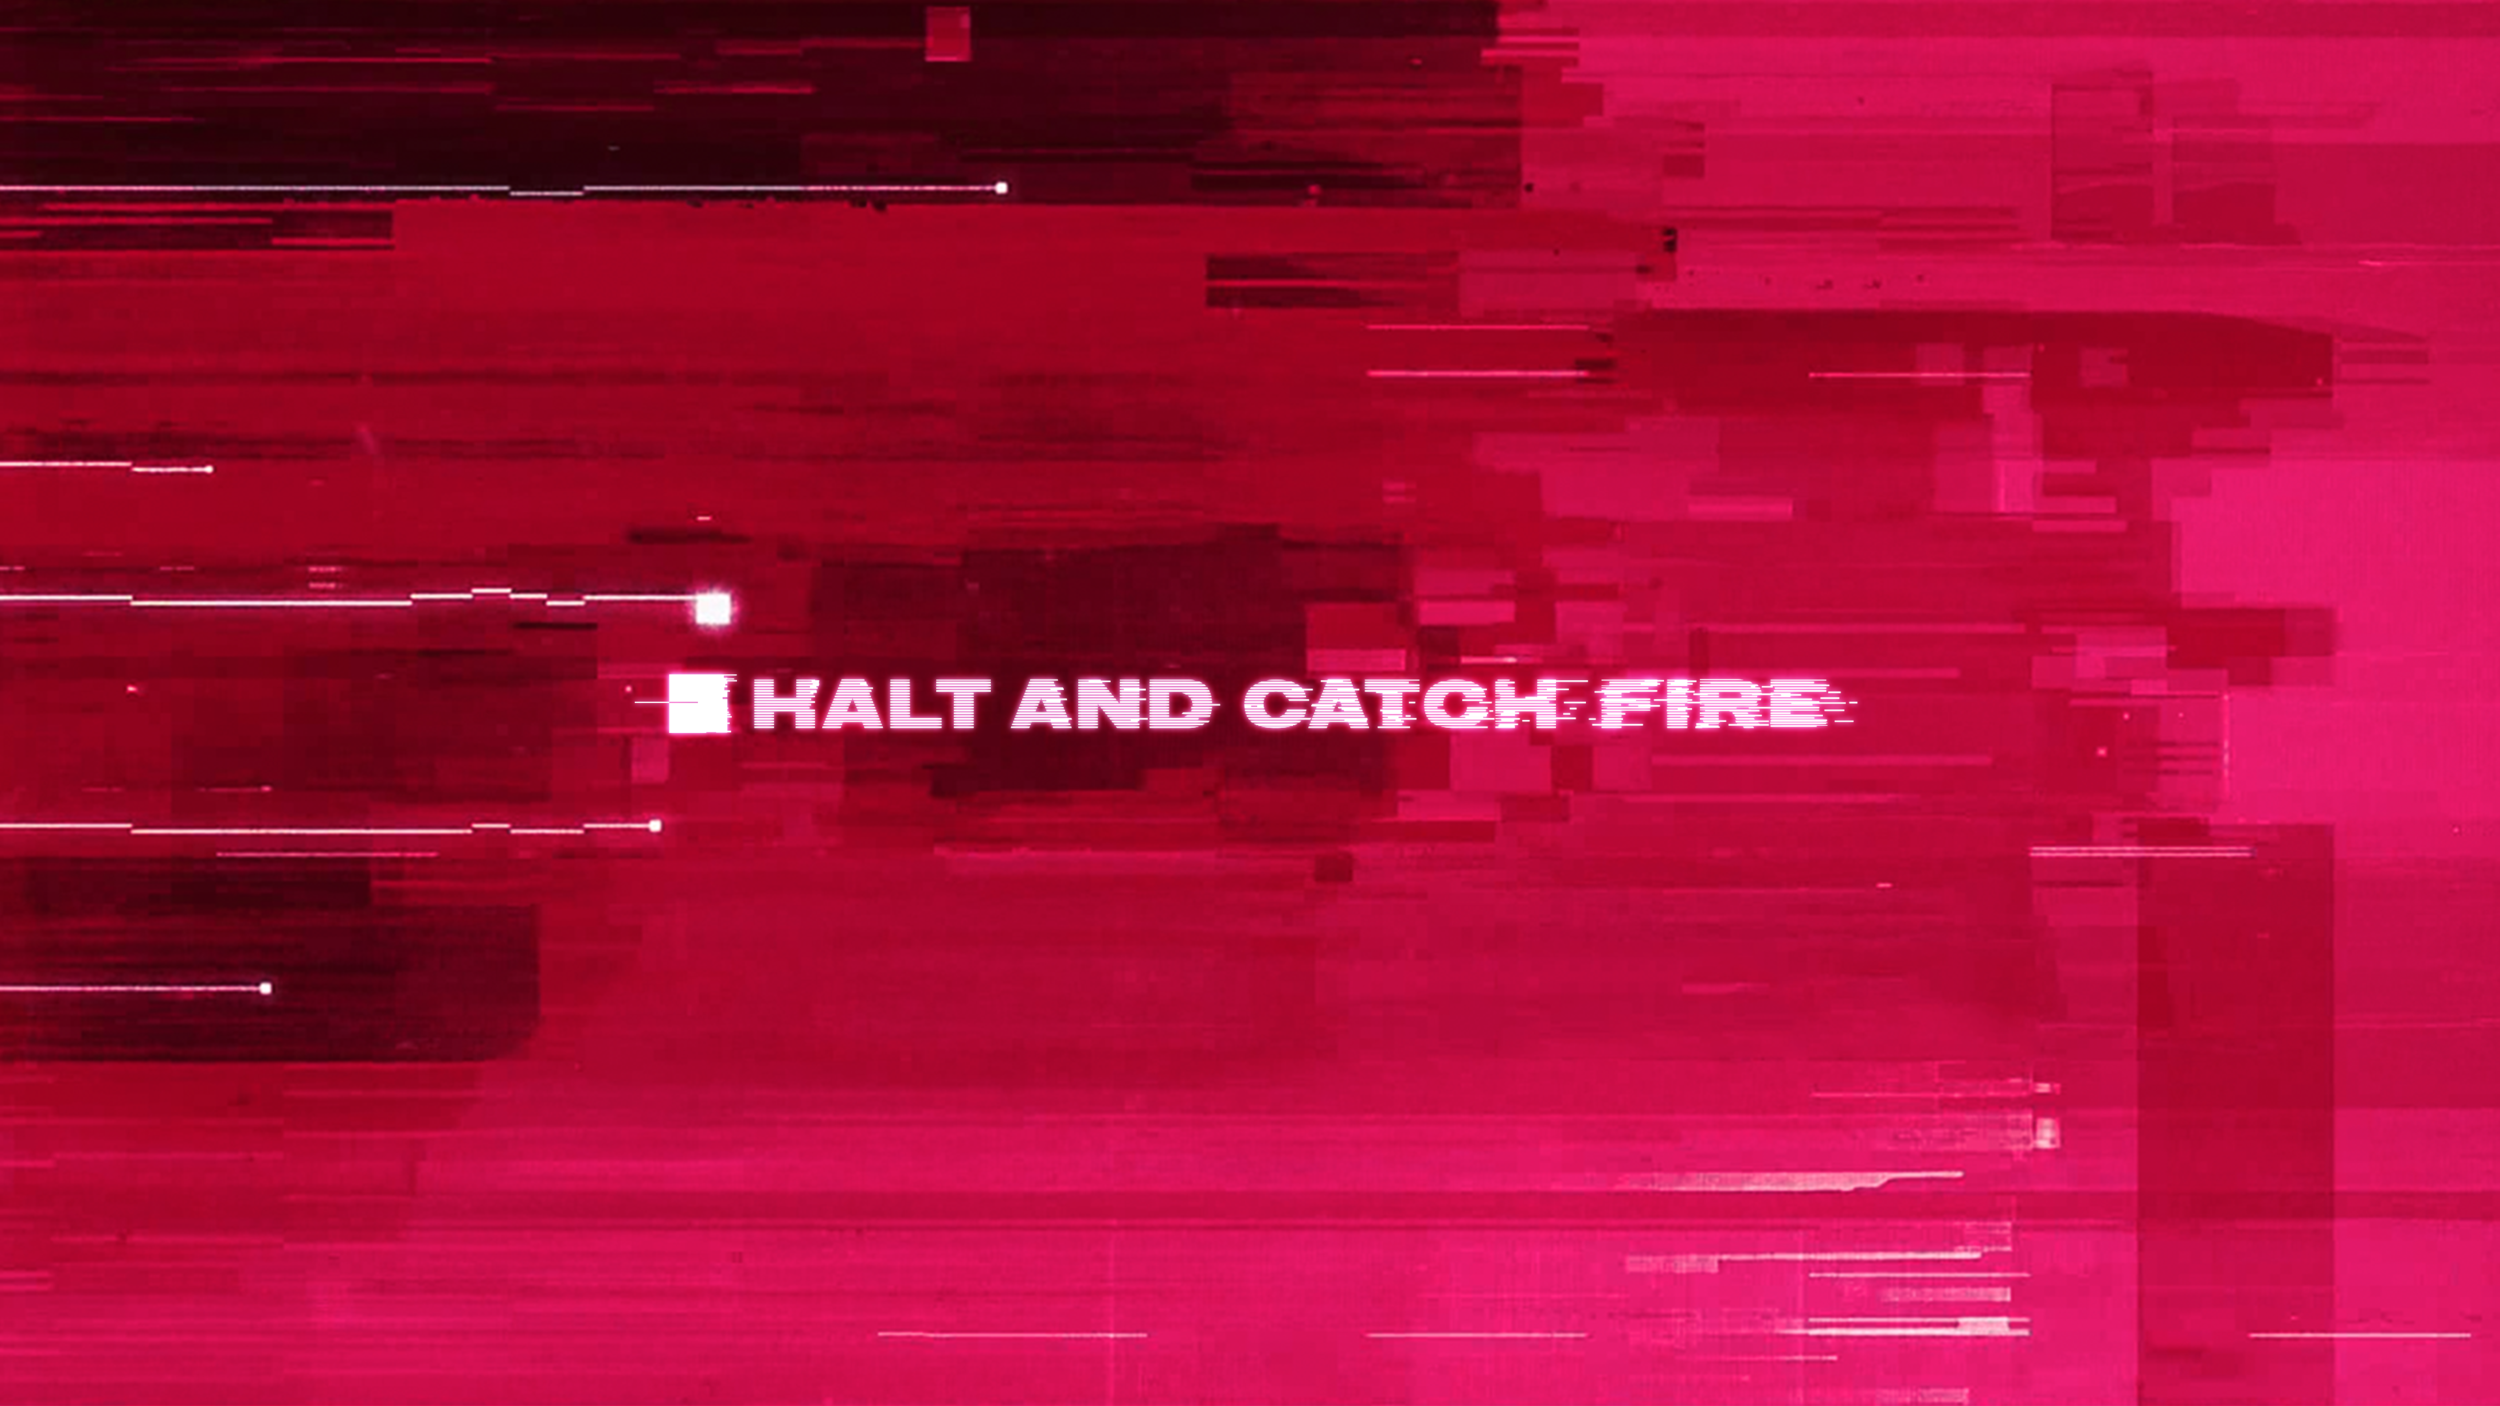 Halt and Catch Fire, by Christopher Cantwell, Christopher C. Rogers, and AMC.